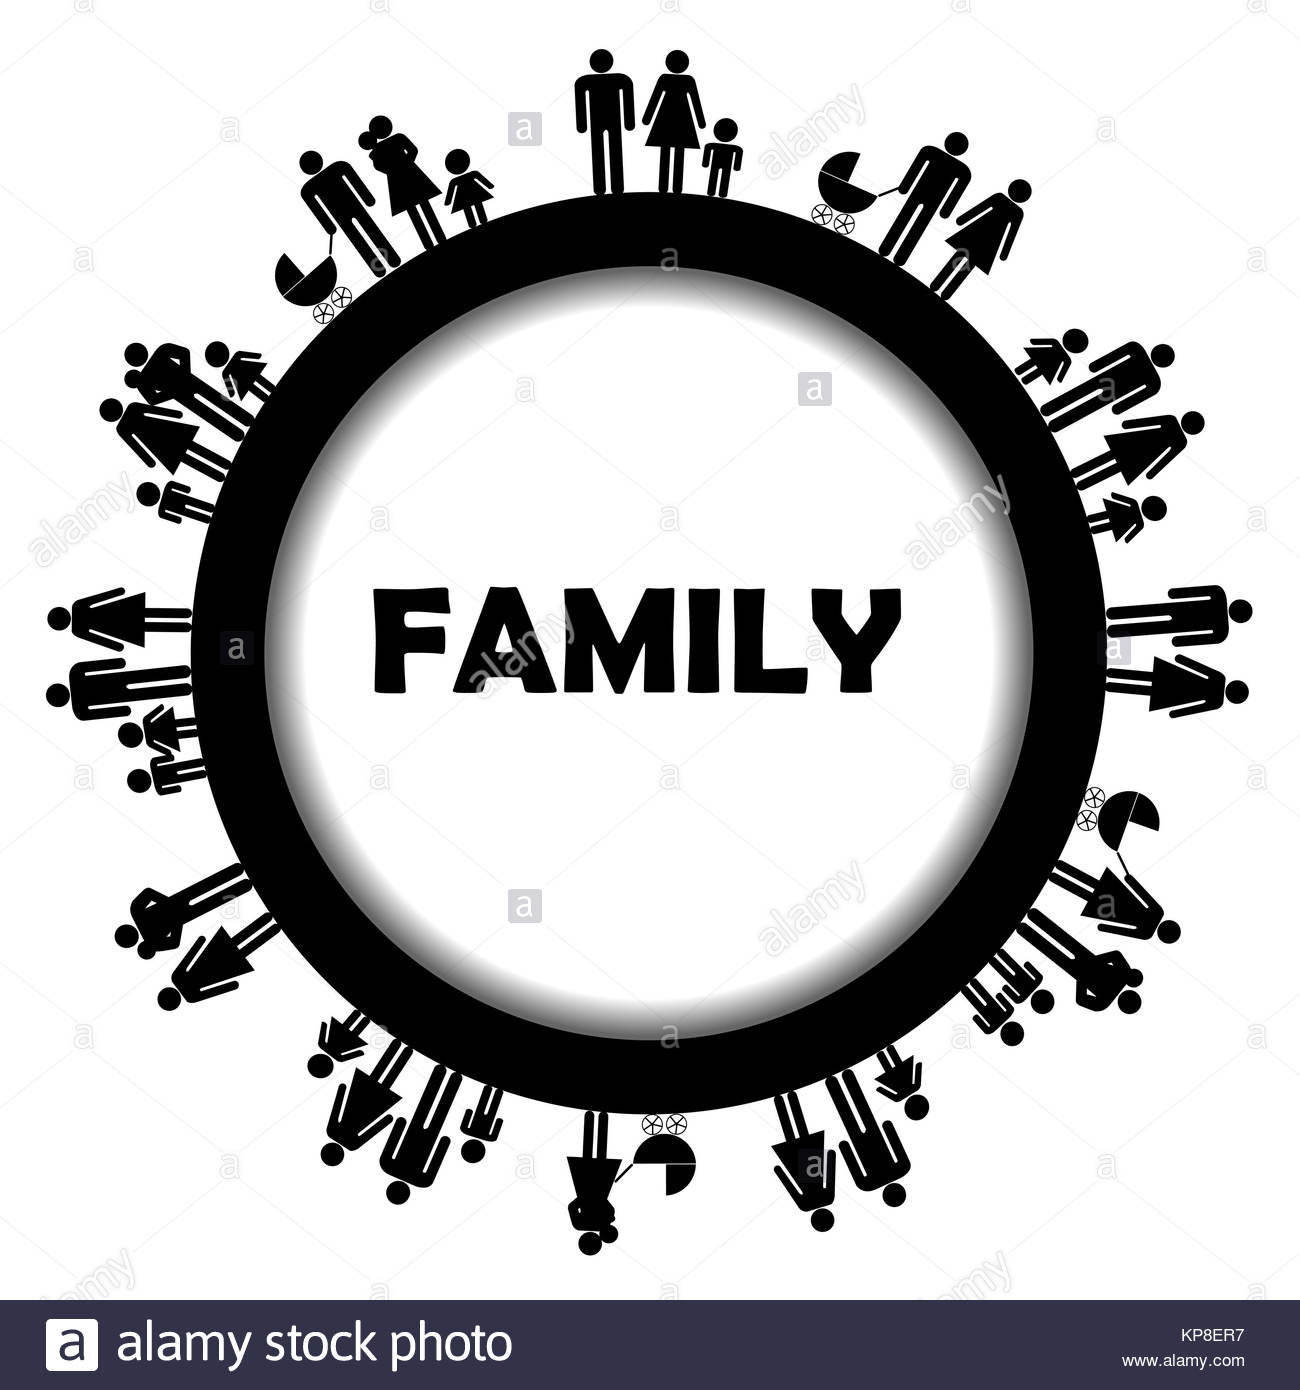 Mom Dad Father Baby Silhouette Stockfotos & Mom Dad Father Baby ...